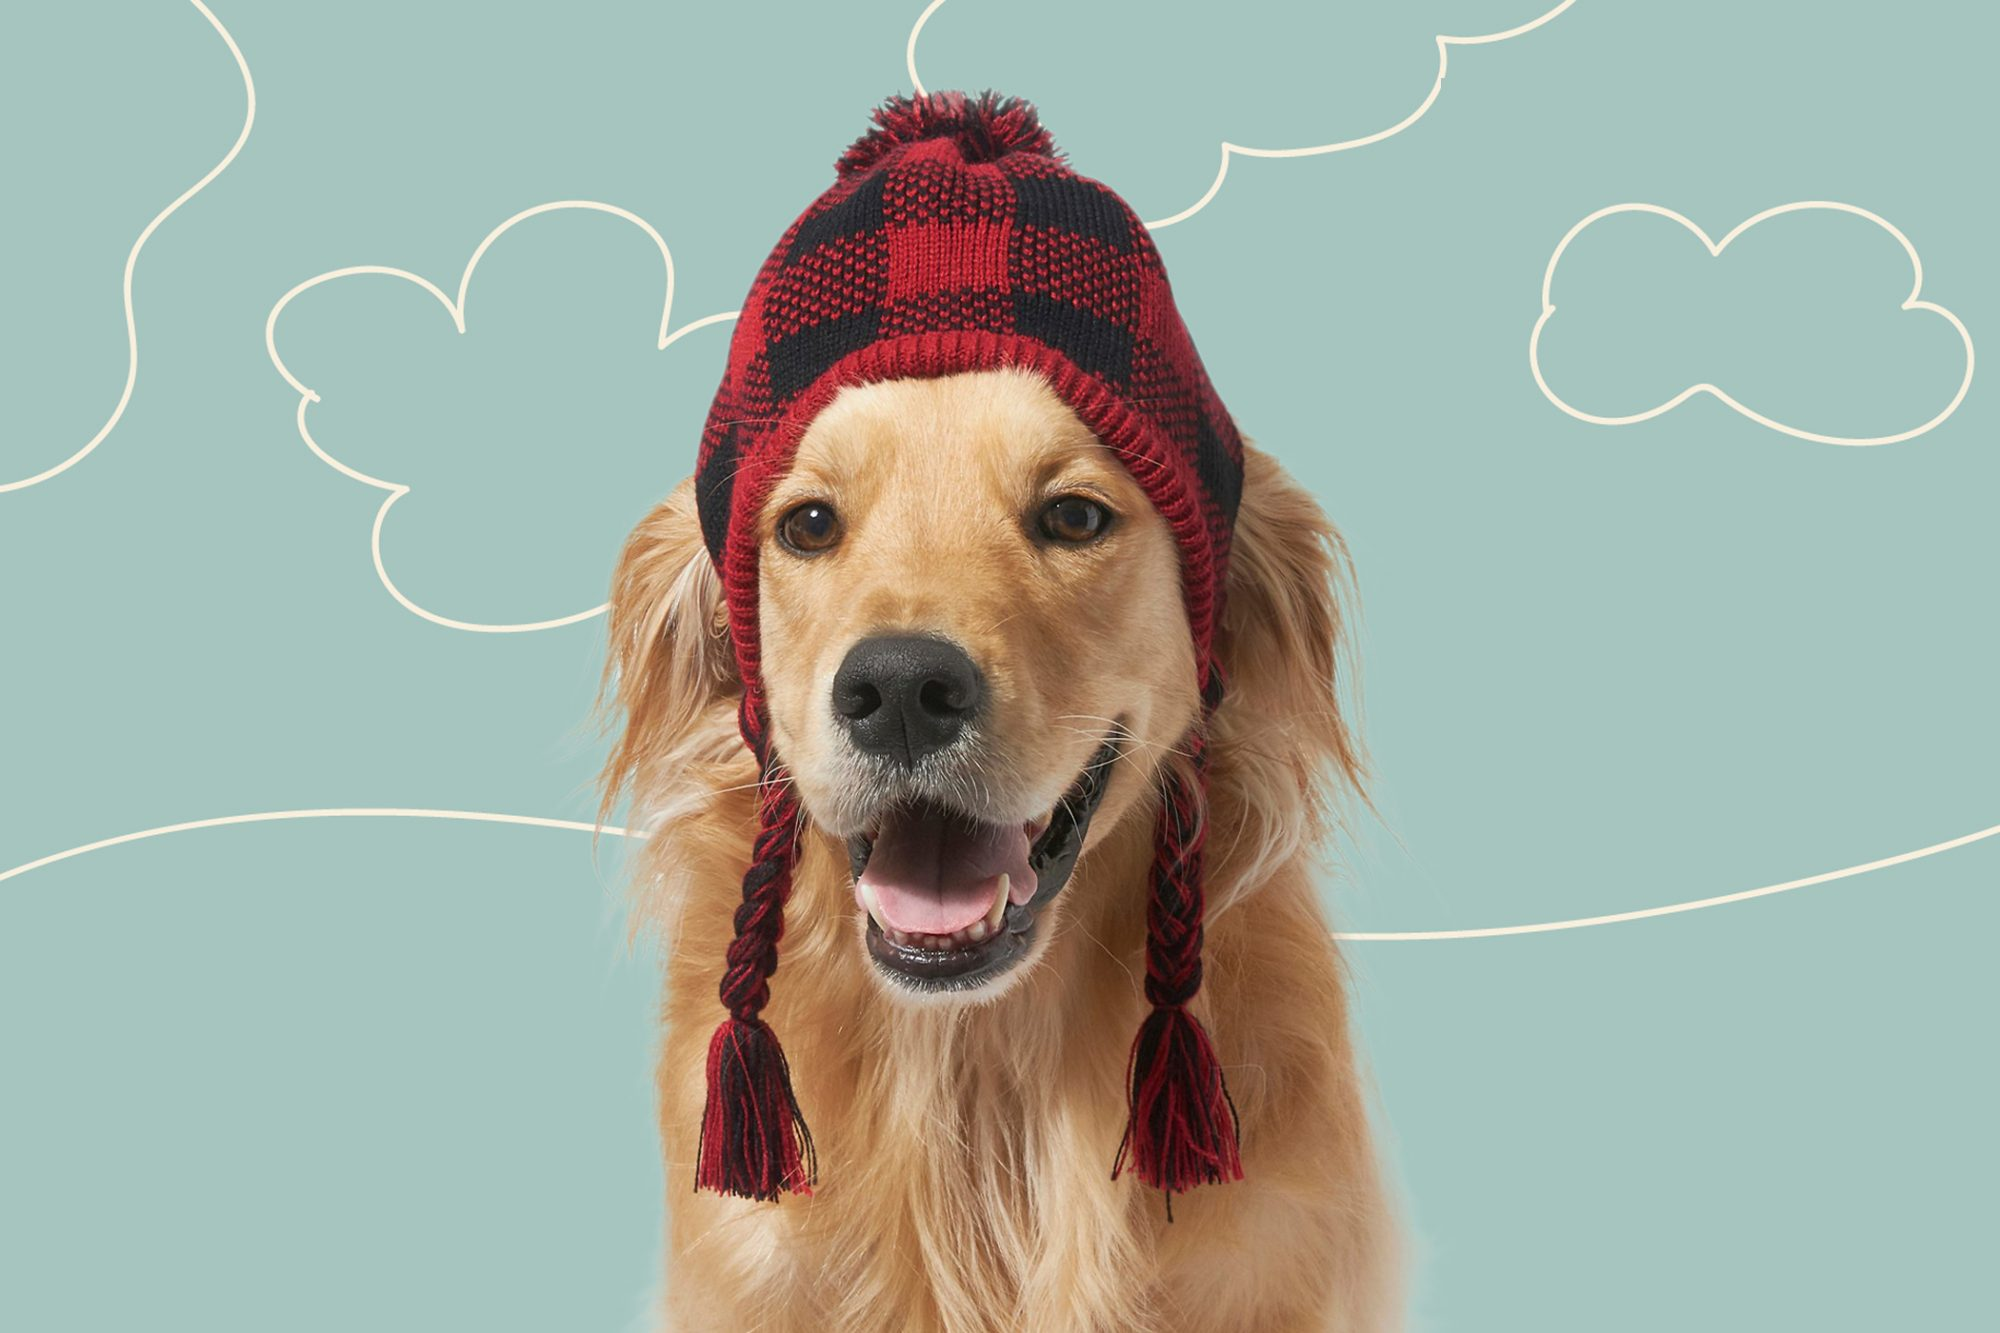 Retriever wears winter hat with tassels